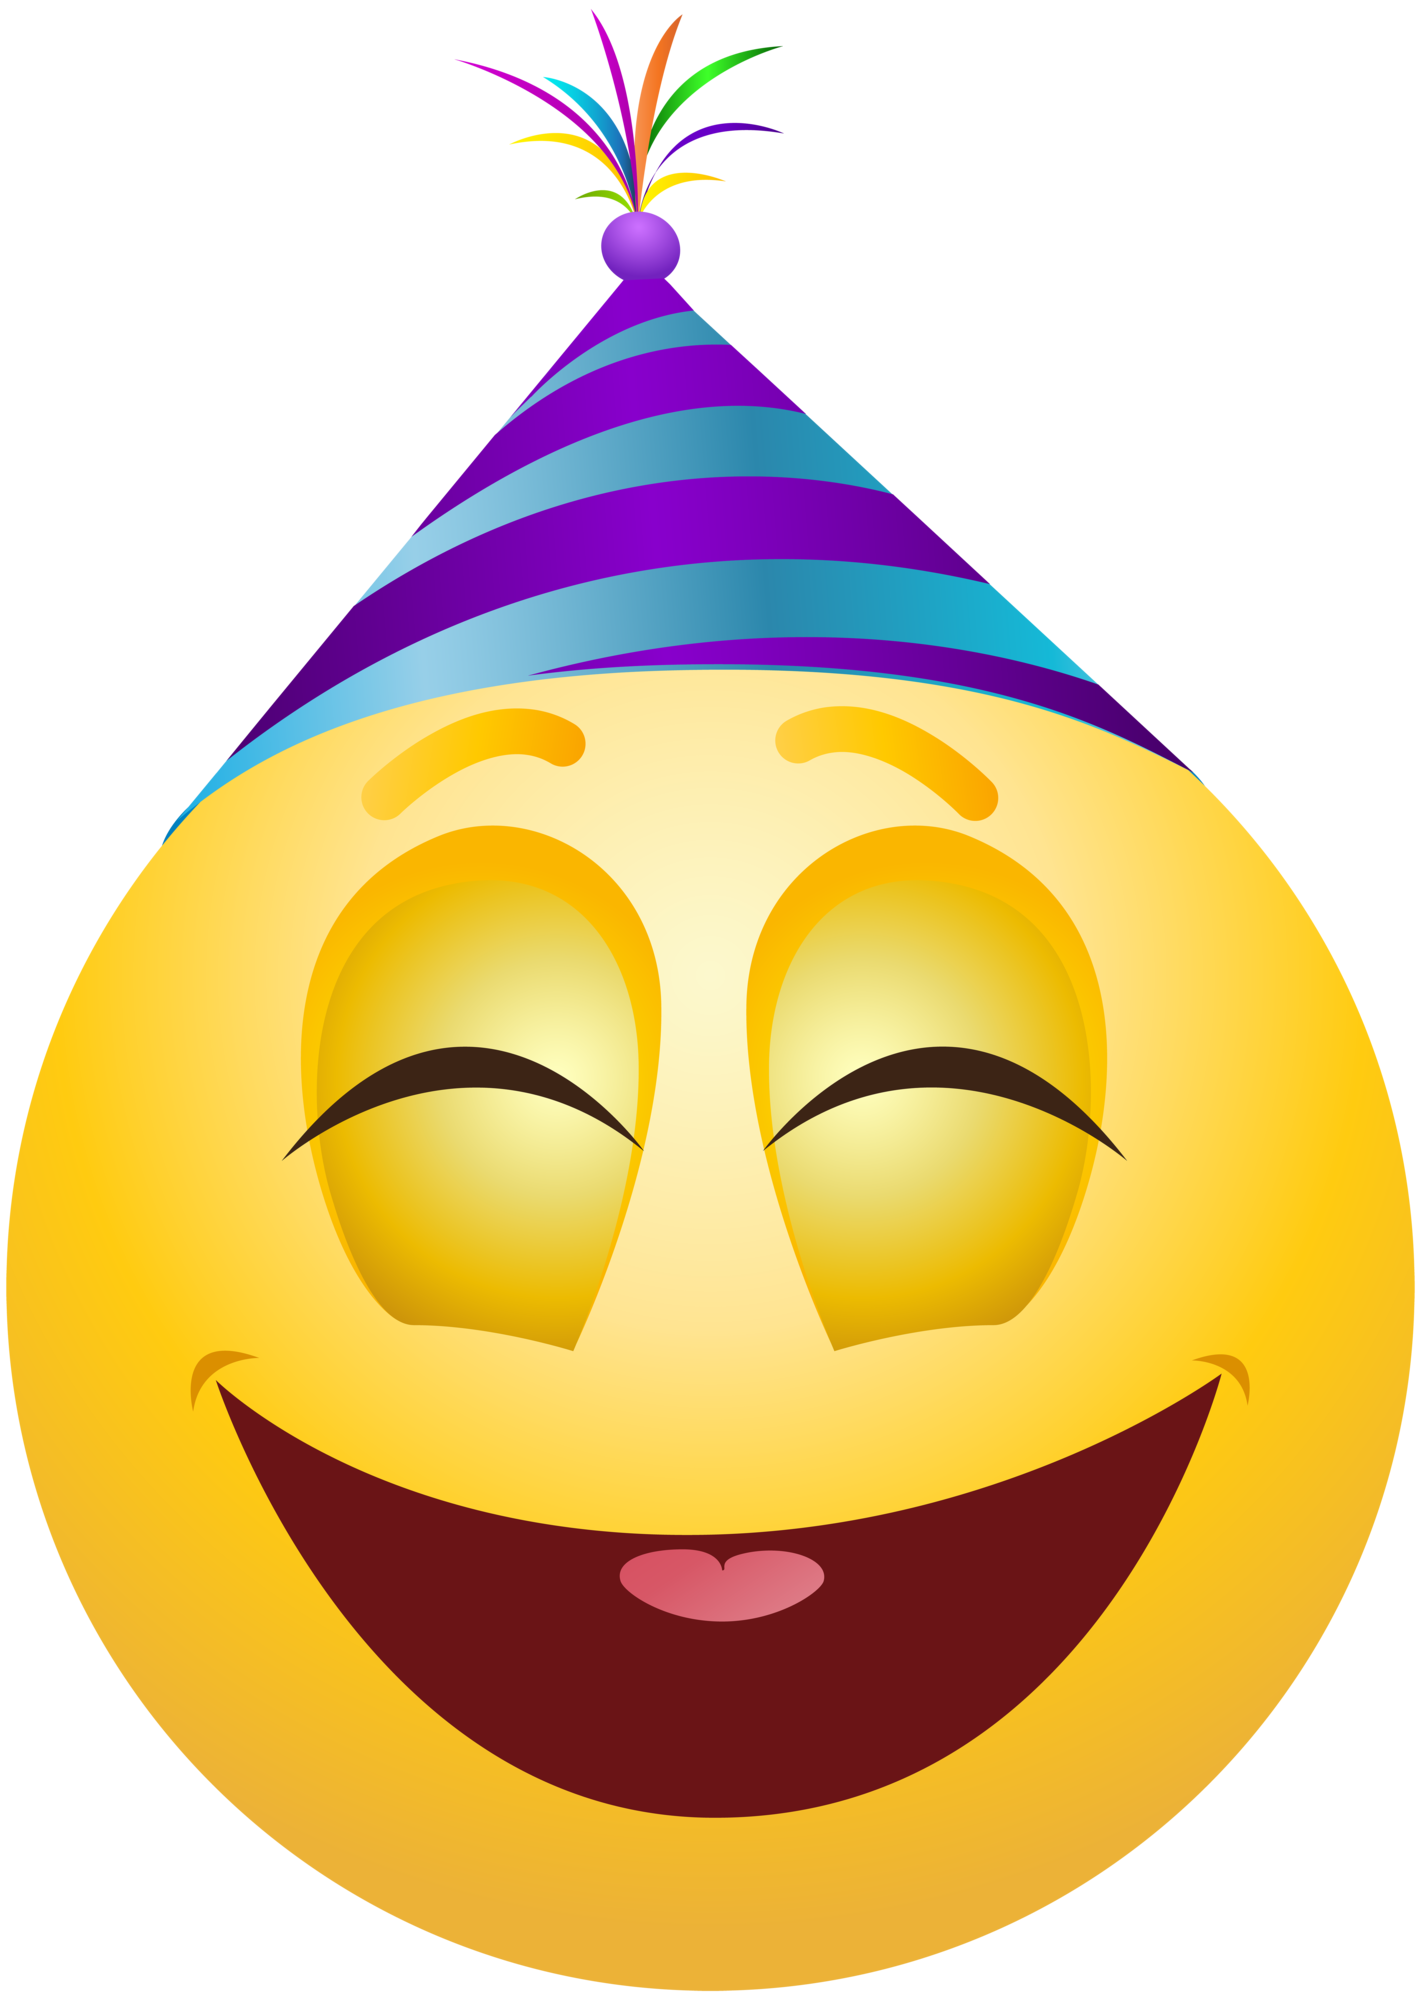 Party emoji clipart clip free library Party Emoticon Emoji Clipart Info clip free library